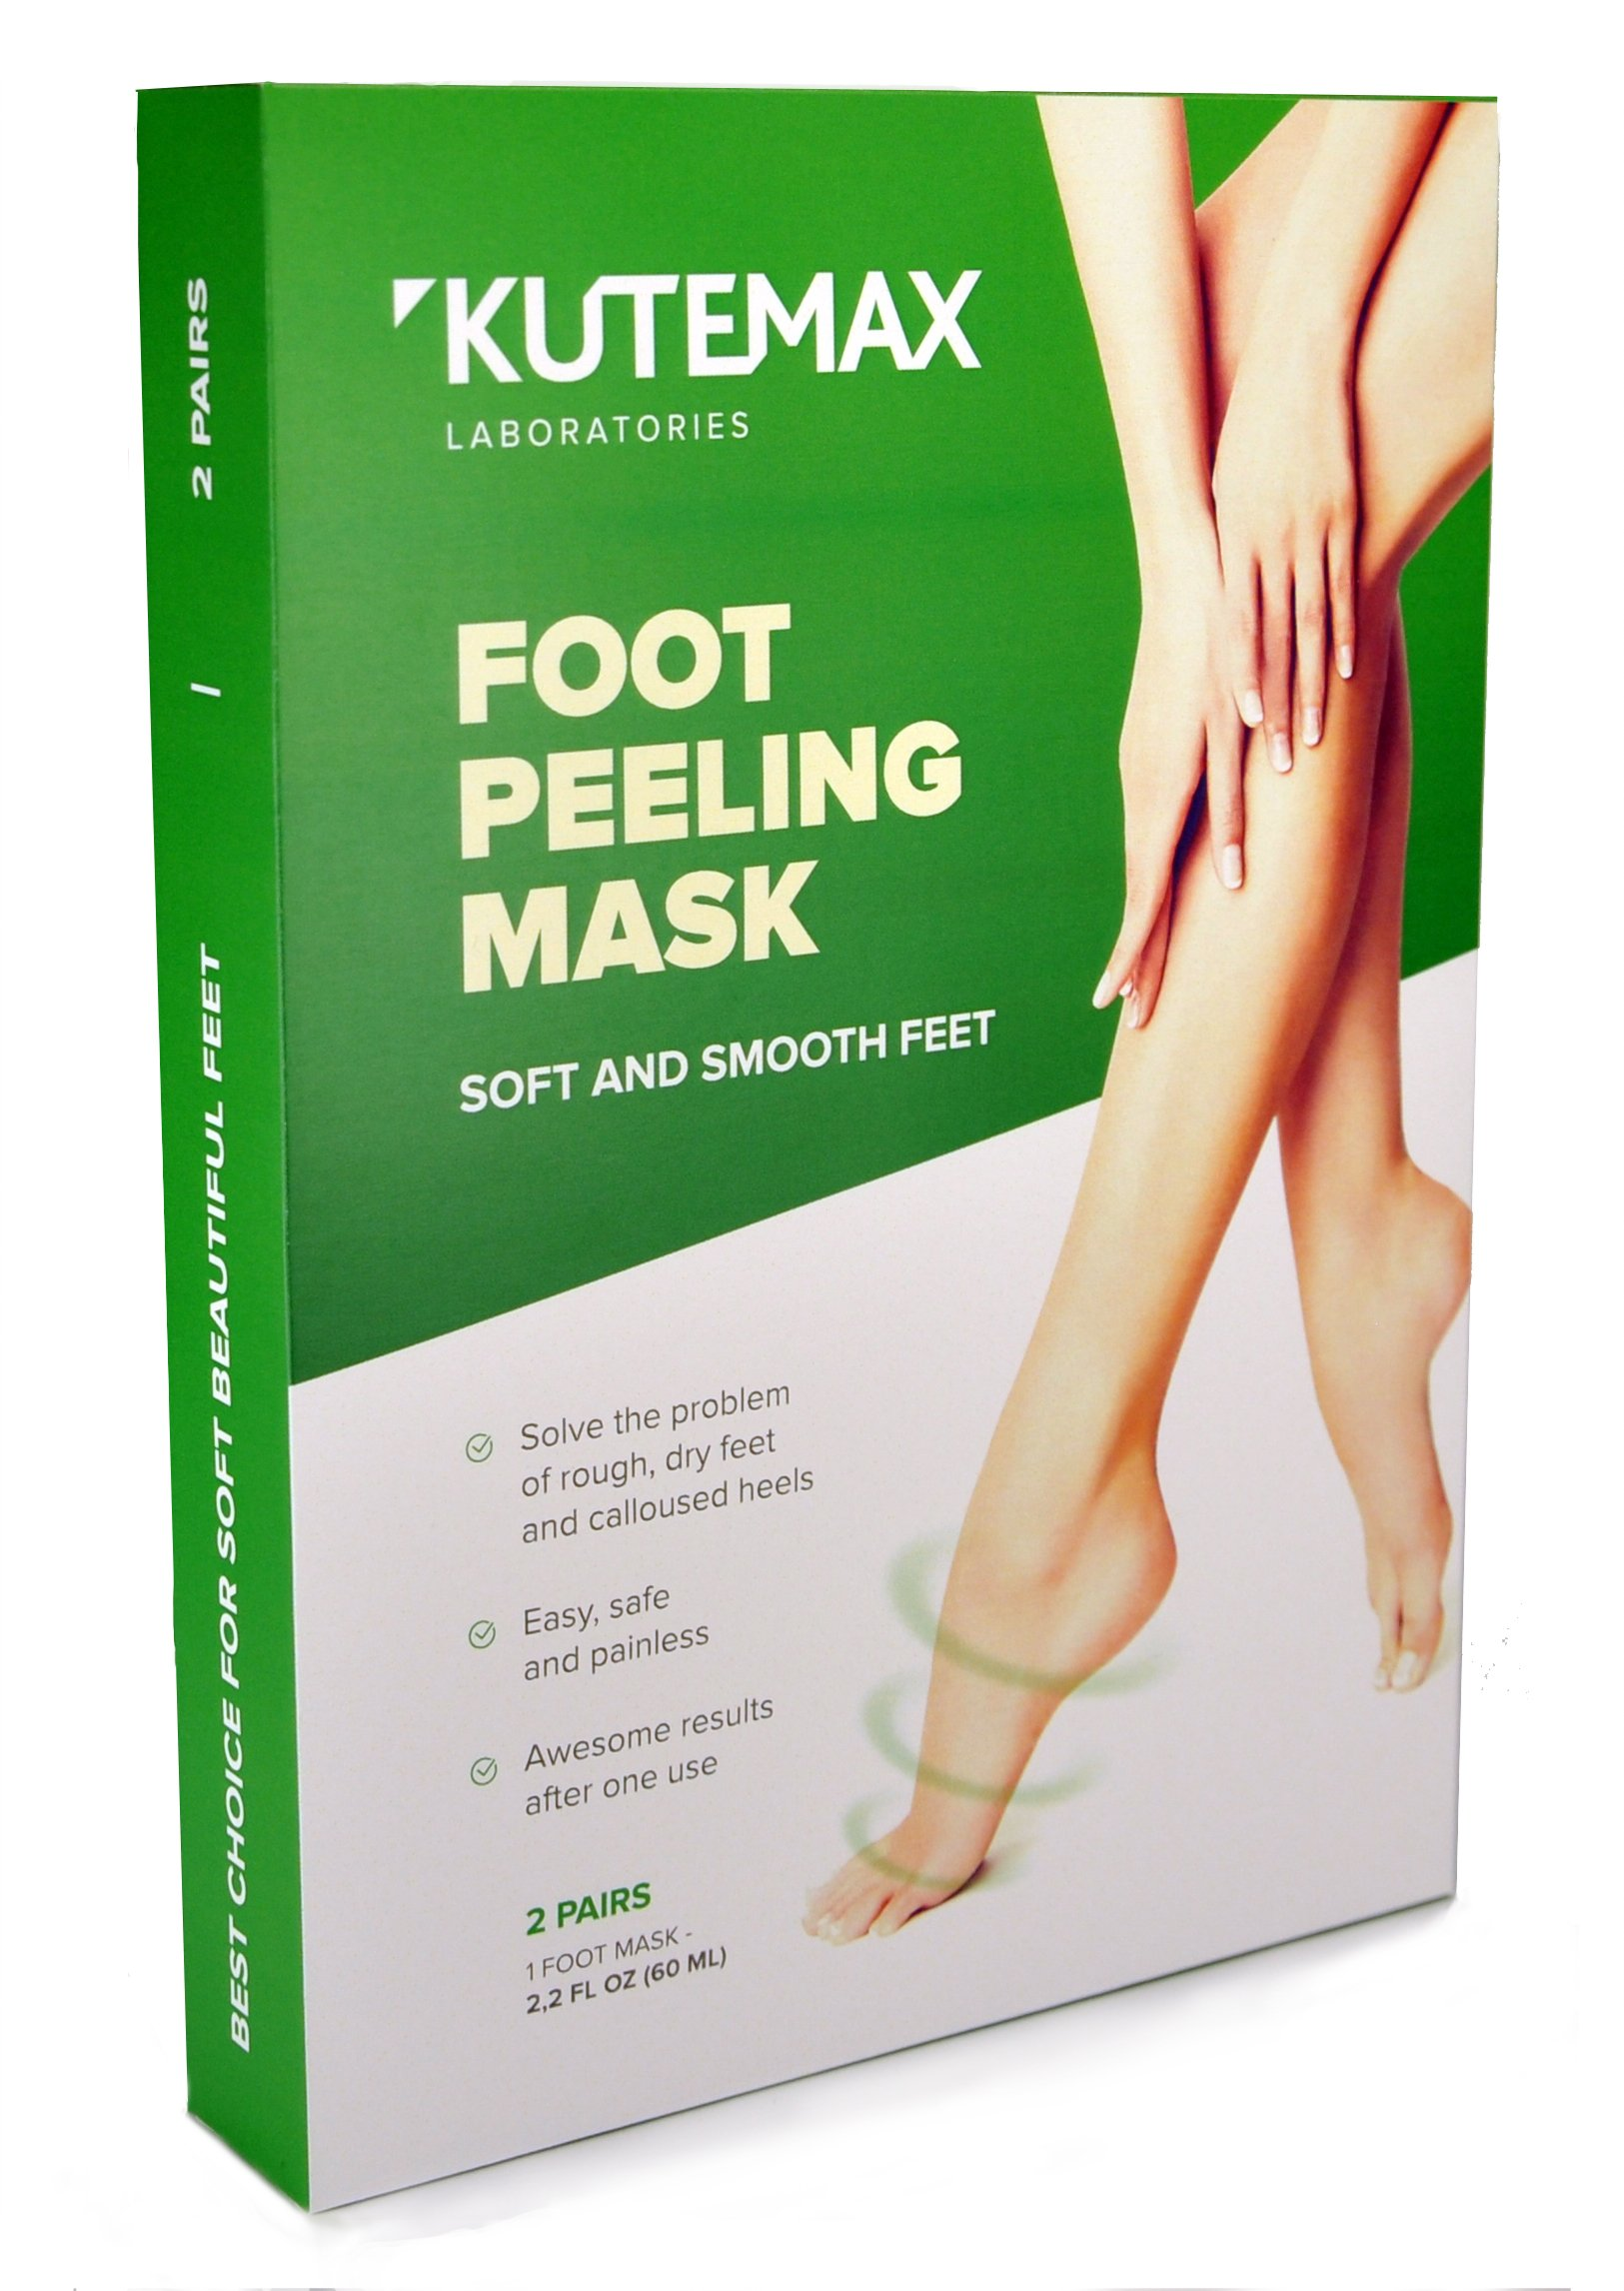 Foot Peel Mask NEW 2018-2 Pairs of Foot Peeling Socks for Exfoliation of Dead Skin and Calluses - Make Your Feet Baby Soft and Silky